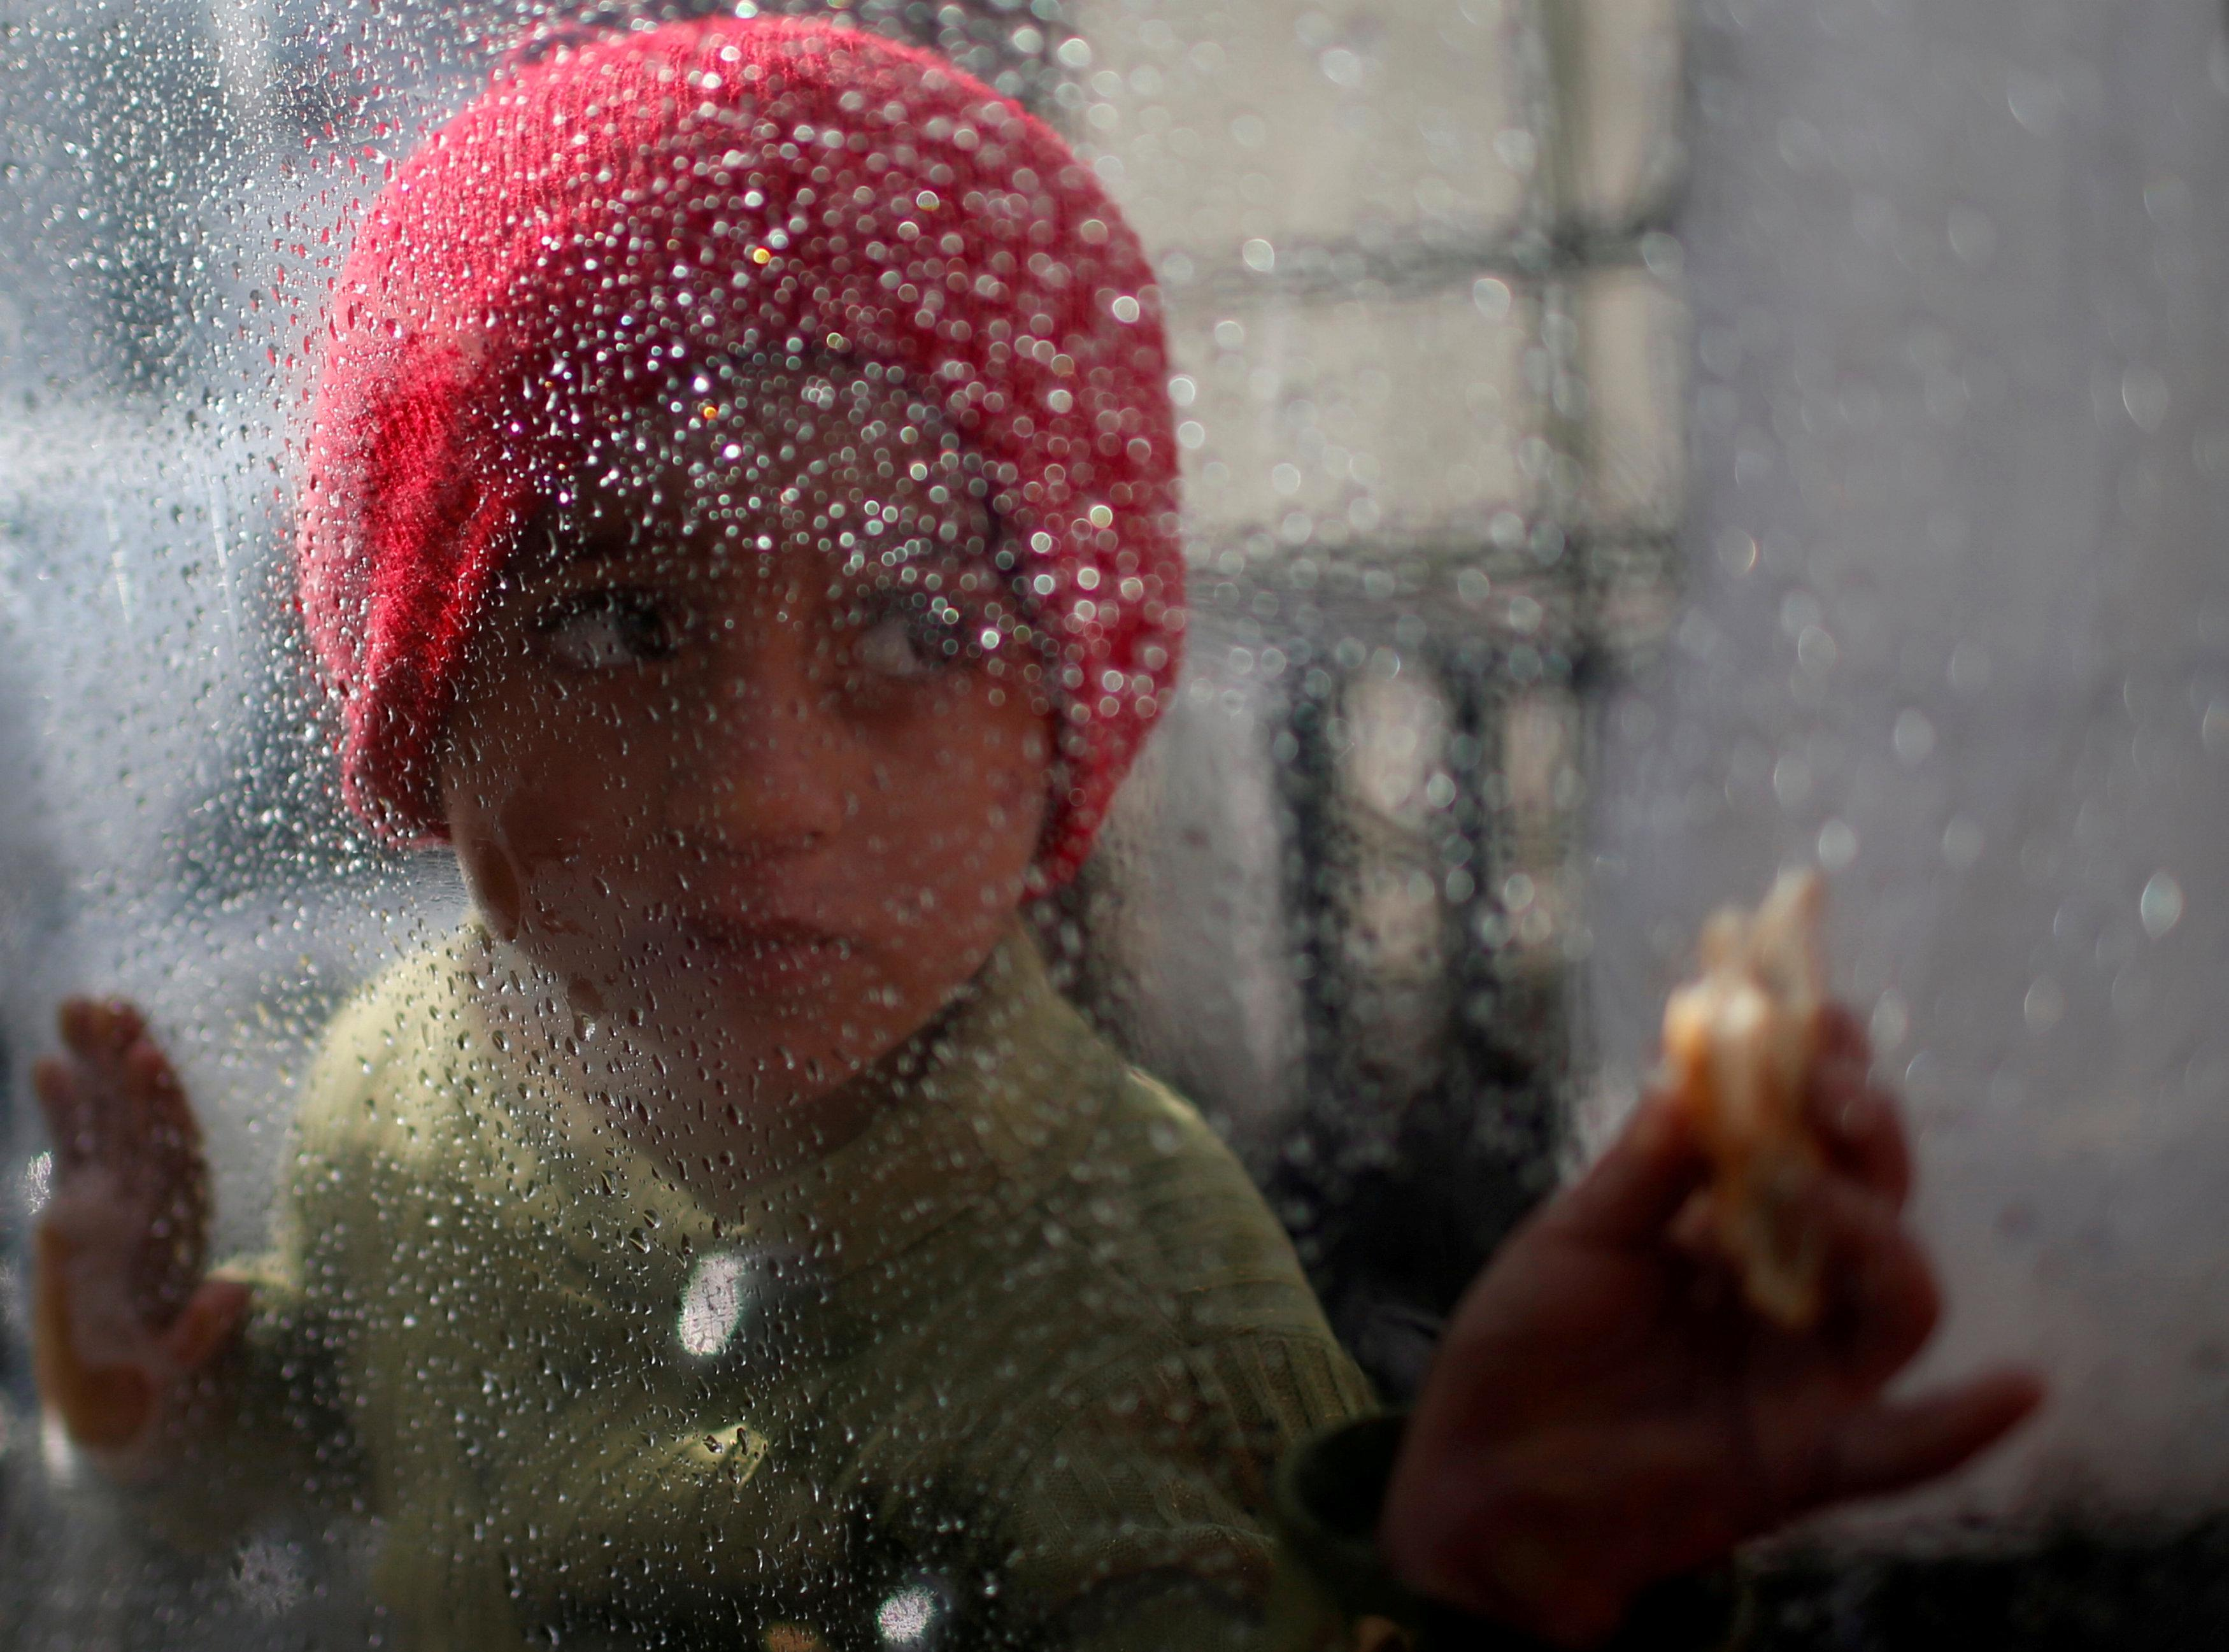 A Palestinian girl looks through a plastic sheet as raindrops are seen, outside her family's house in Al-Shati refugee camp in Gaza City January 17, 2018. Mohammed Salem